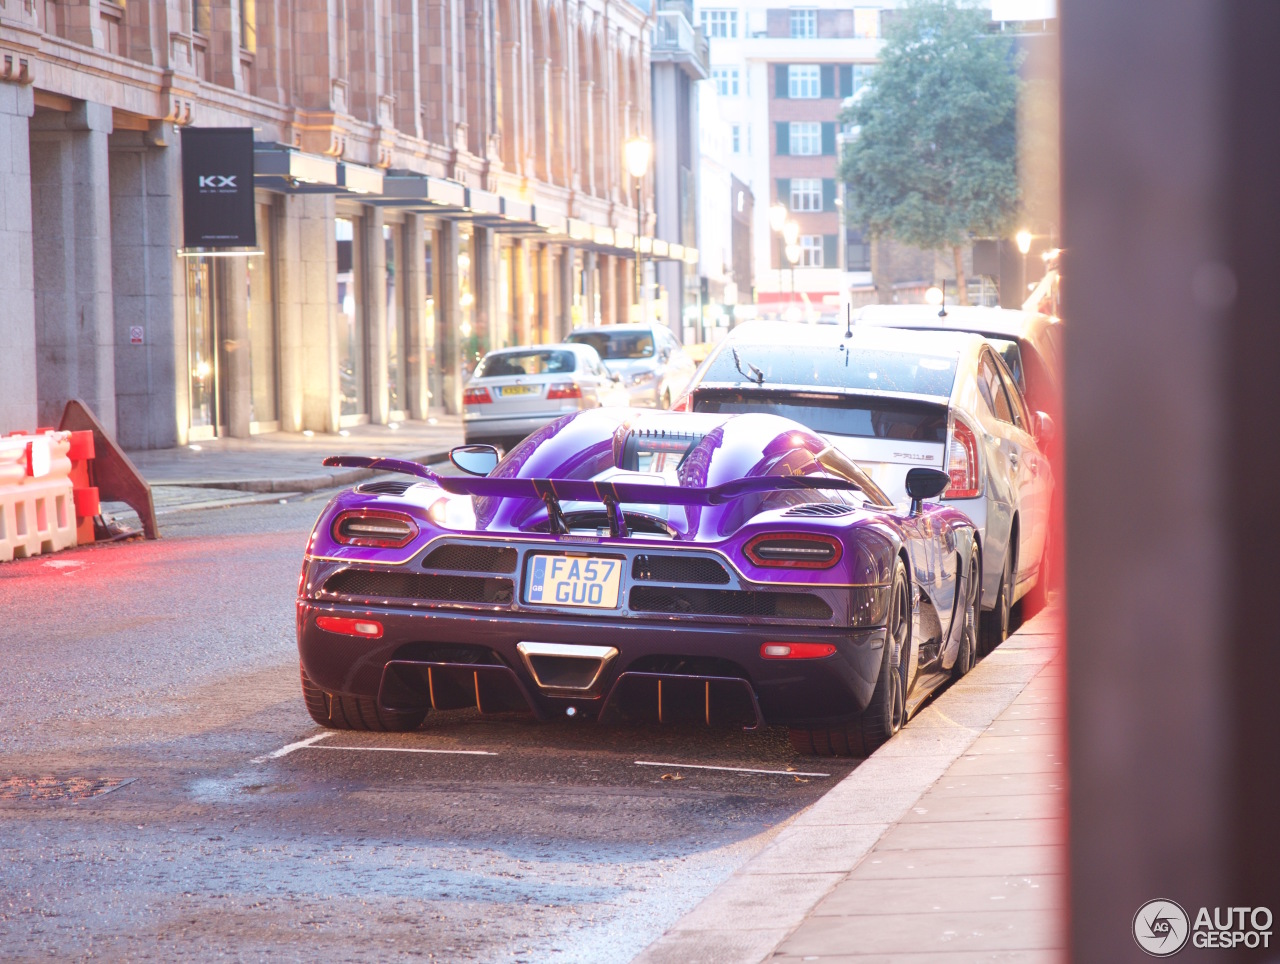 koenigsegg zijin with 22 on 16 likewise Pagani Zonda By Mileson Revealed further Spots furthermore 12 besides 18.